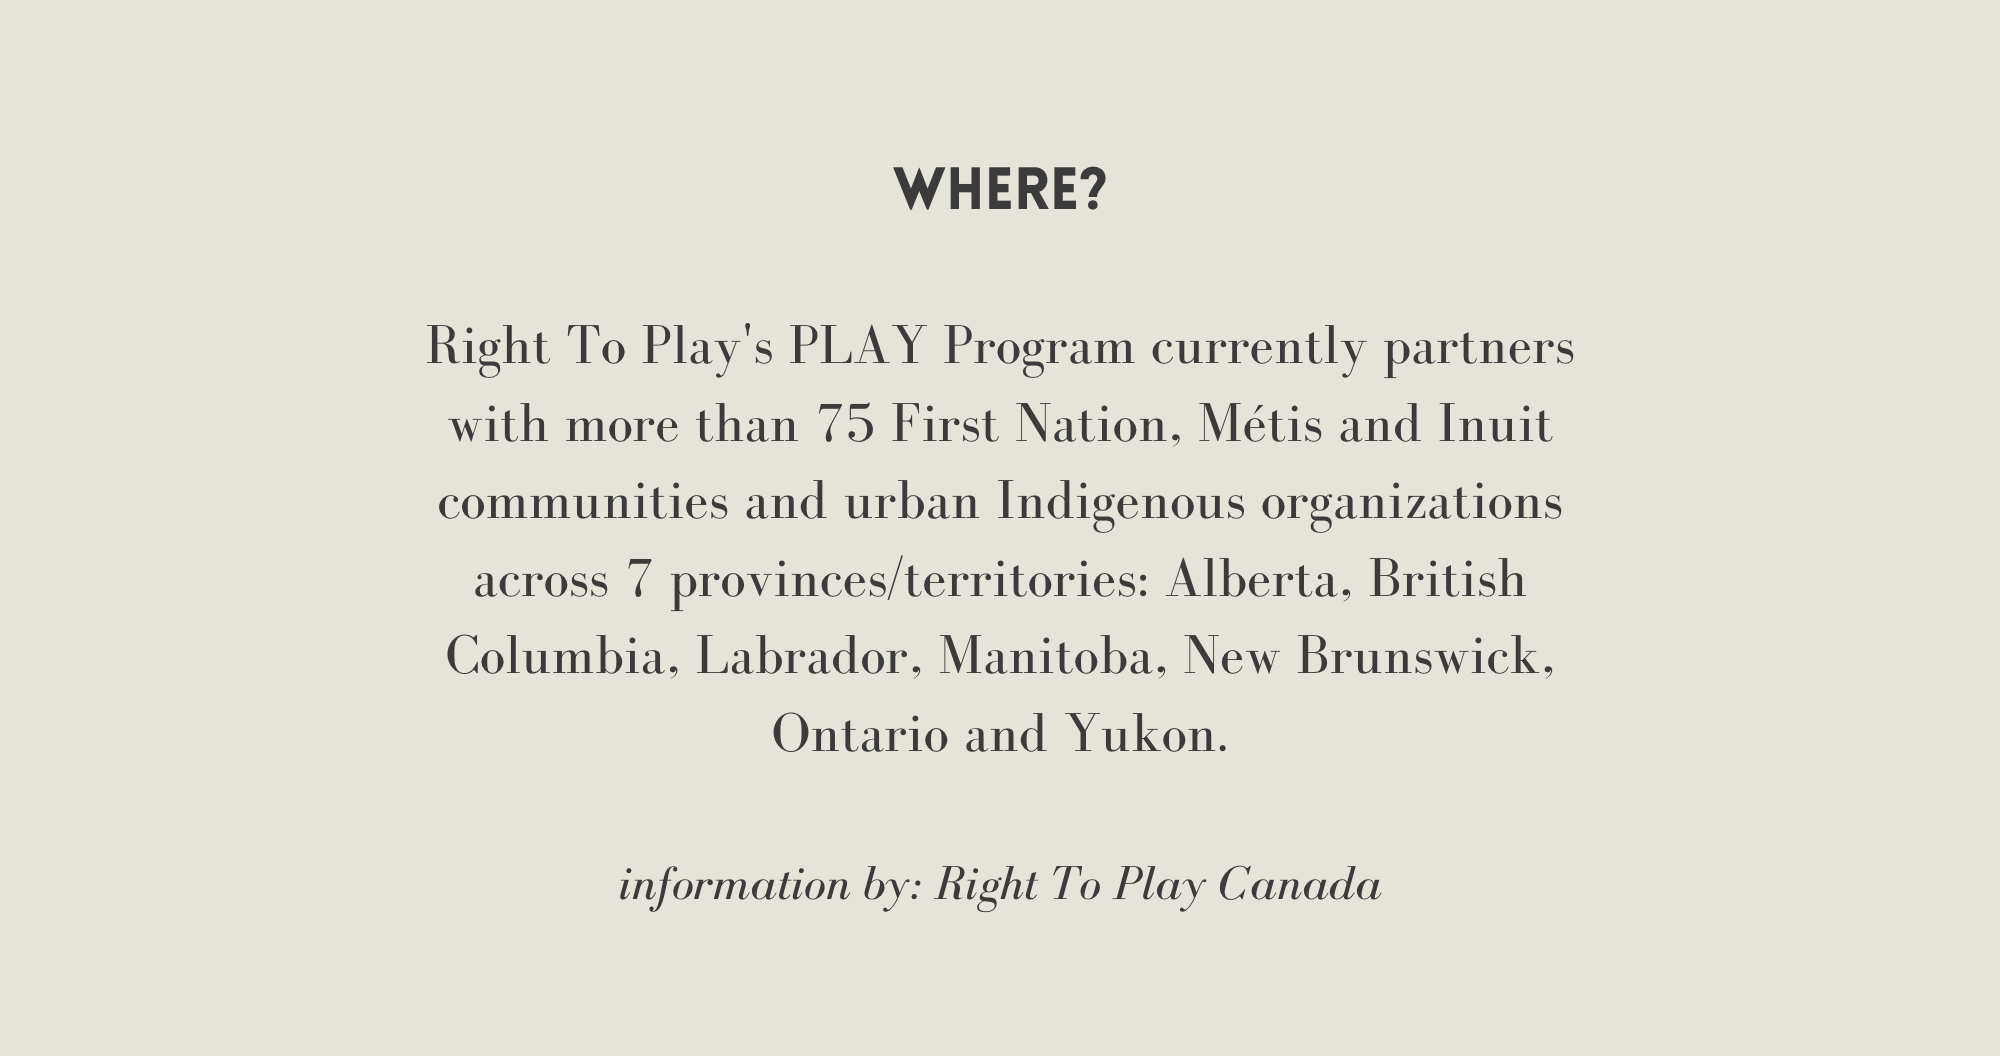 [Where] Right To Play's PLAY Program currently partners with more than 75 First Nation, Métis, Inuit communities and urban Indigenous organizations across 7 provinces/ territories: Alberta, British Columbia, Labrador, Manitoba, NB, ON, and Yukon